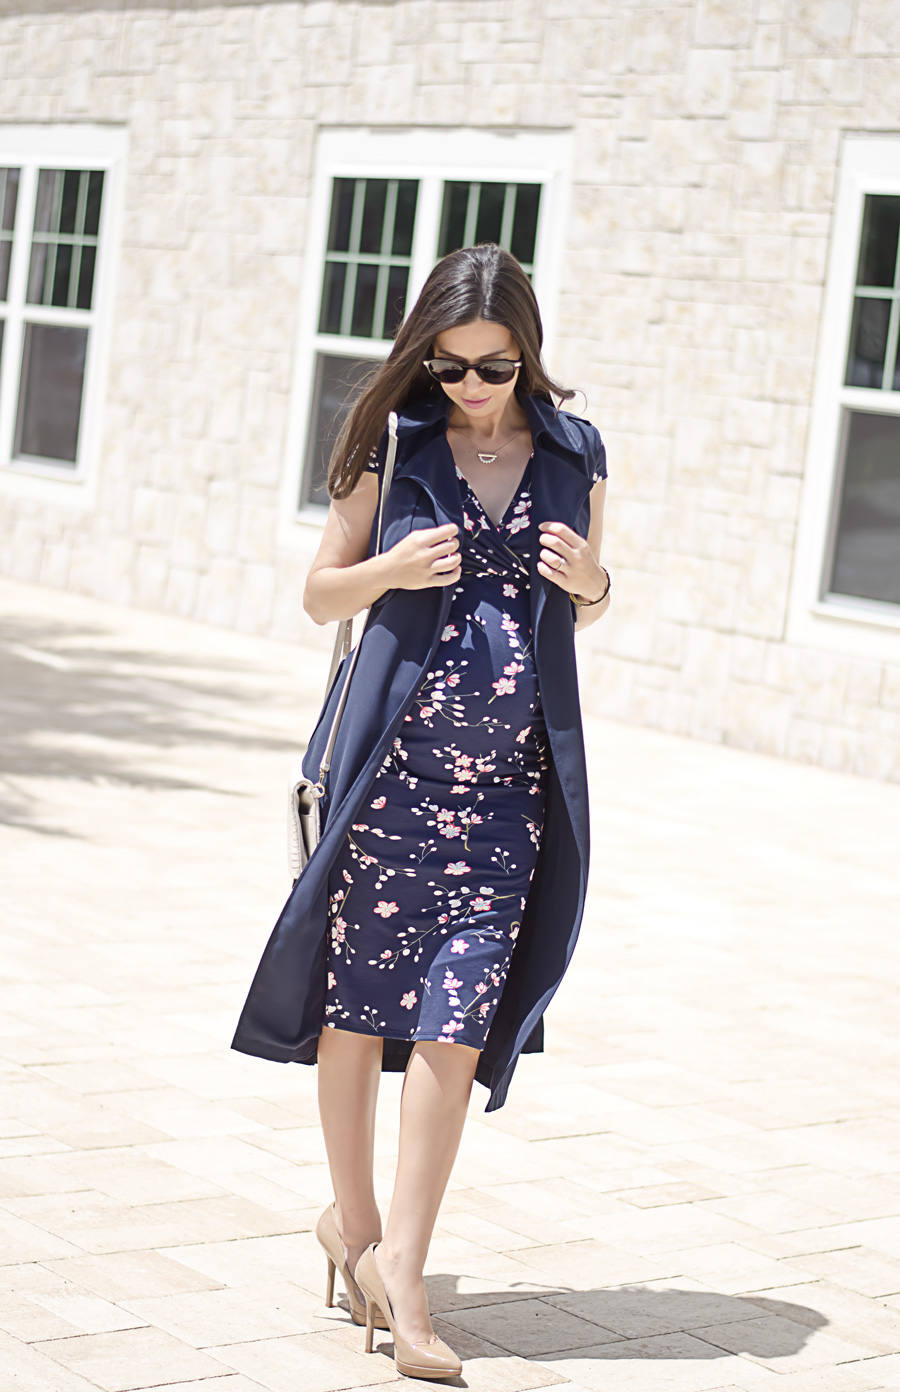 5 Tips to Make a Floral Dress Look Professional, Dorothy Perkins Floral Maternity Dress and Navy Sleeveless Trench Coat - a